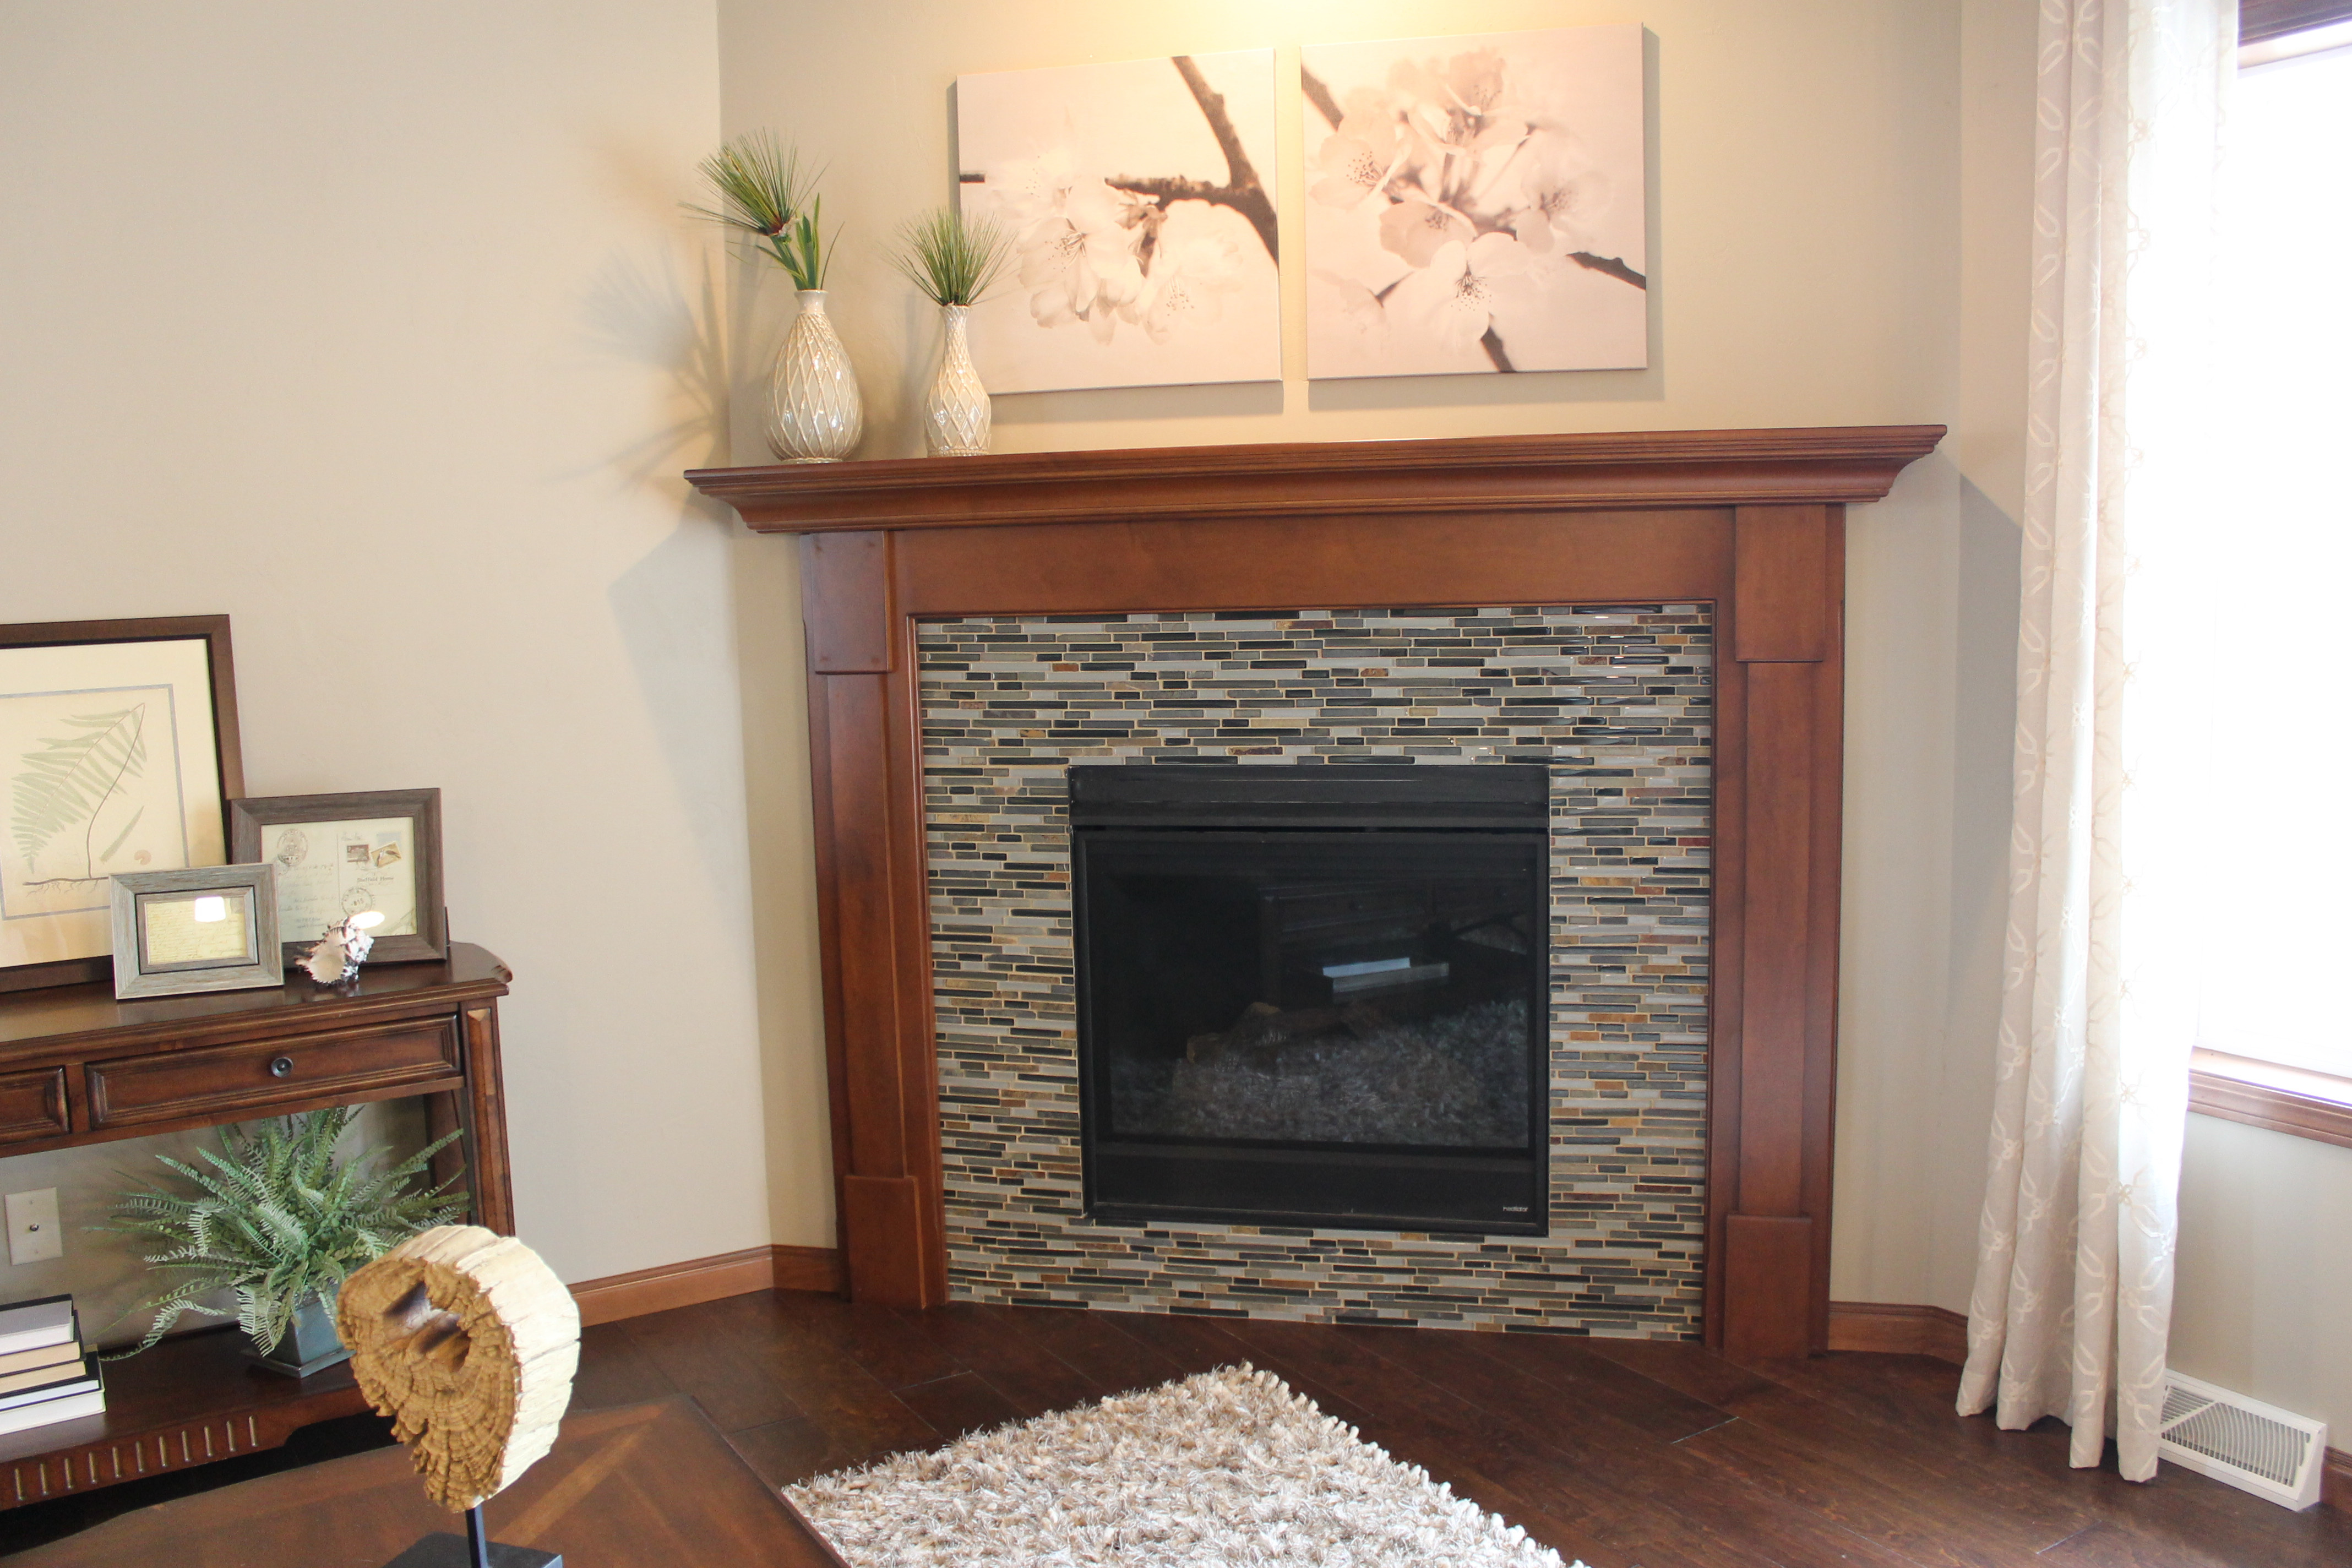 Best ideas about Tile For Fireplace . Save or Pin The Best & Basics of Fireplaces – Katie Jane Interiors Now.